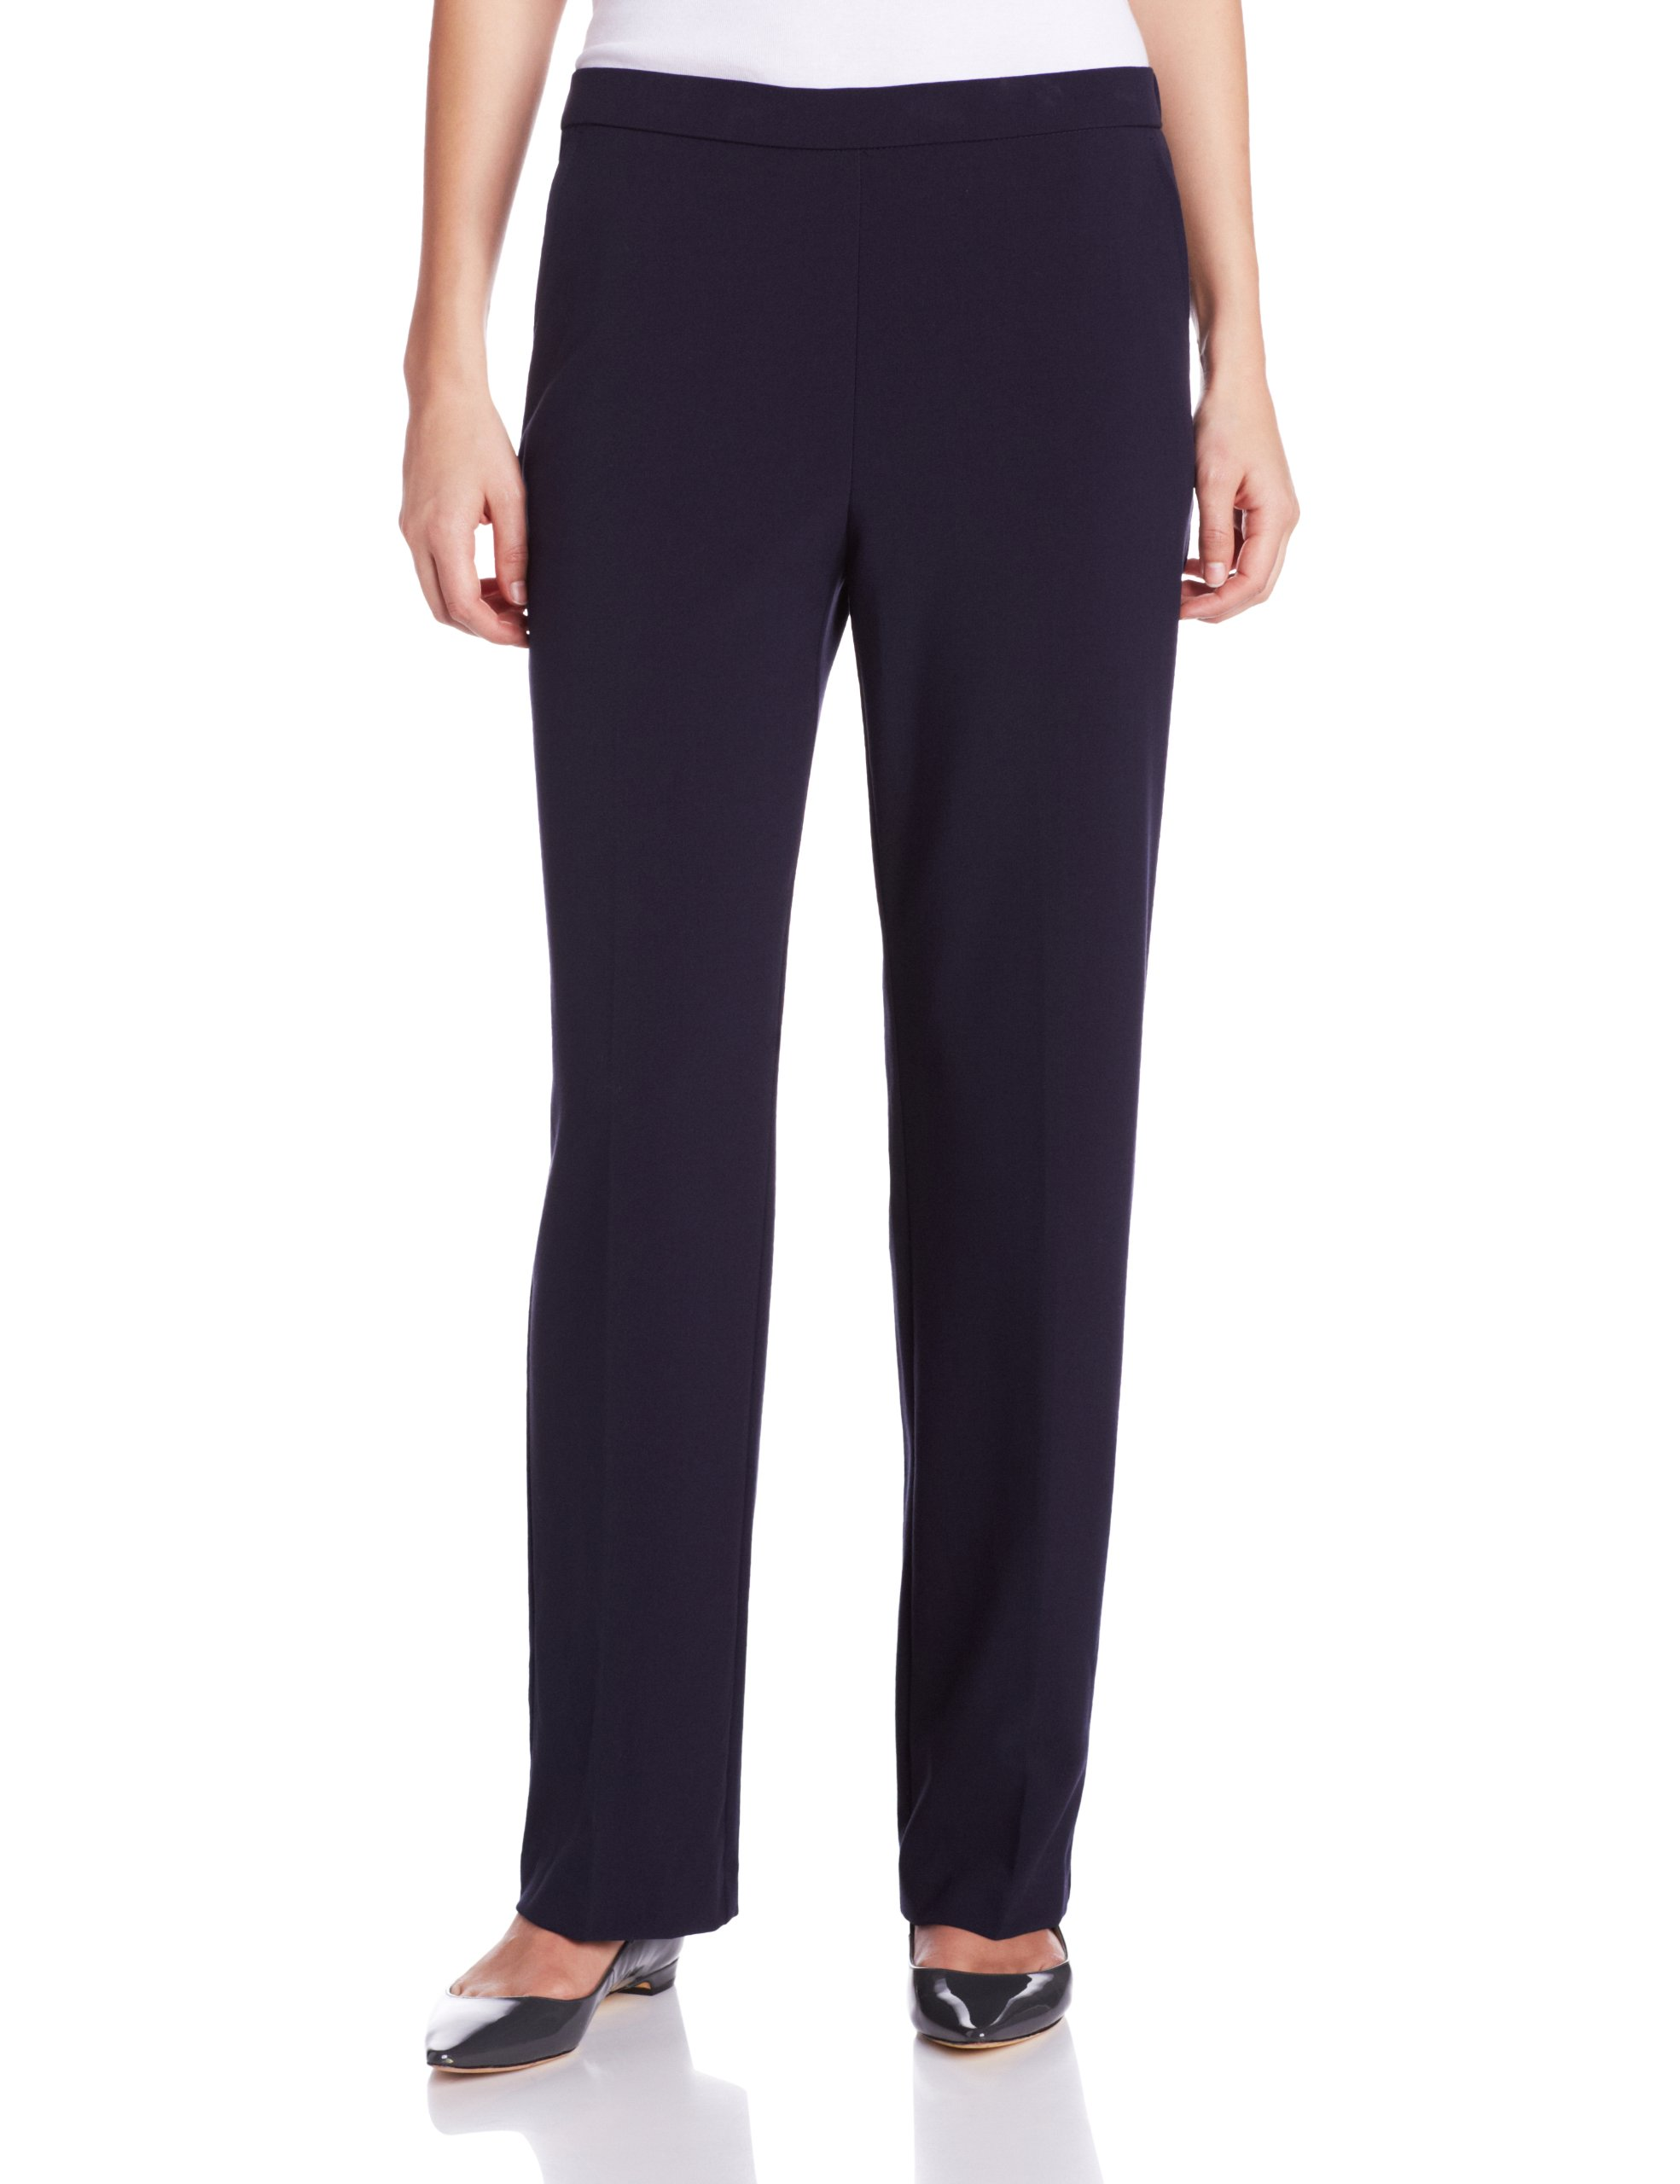 Briggs New York Women's Flat Front Pull On Pant with Slimming Solution, Navy, 12 Short